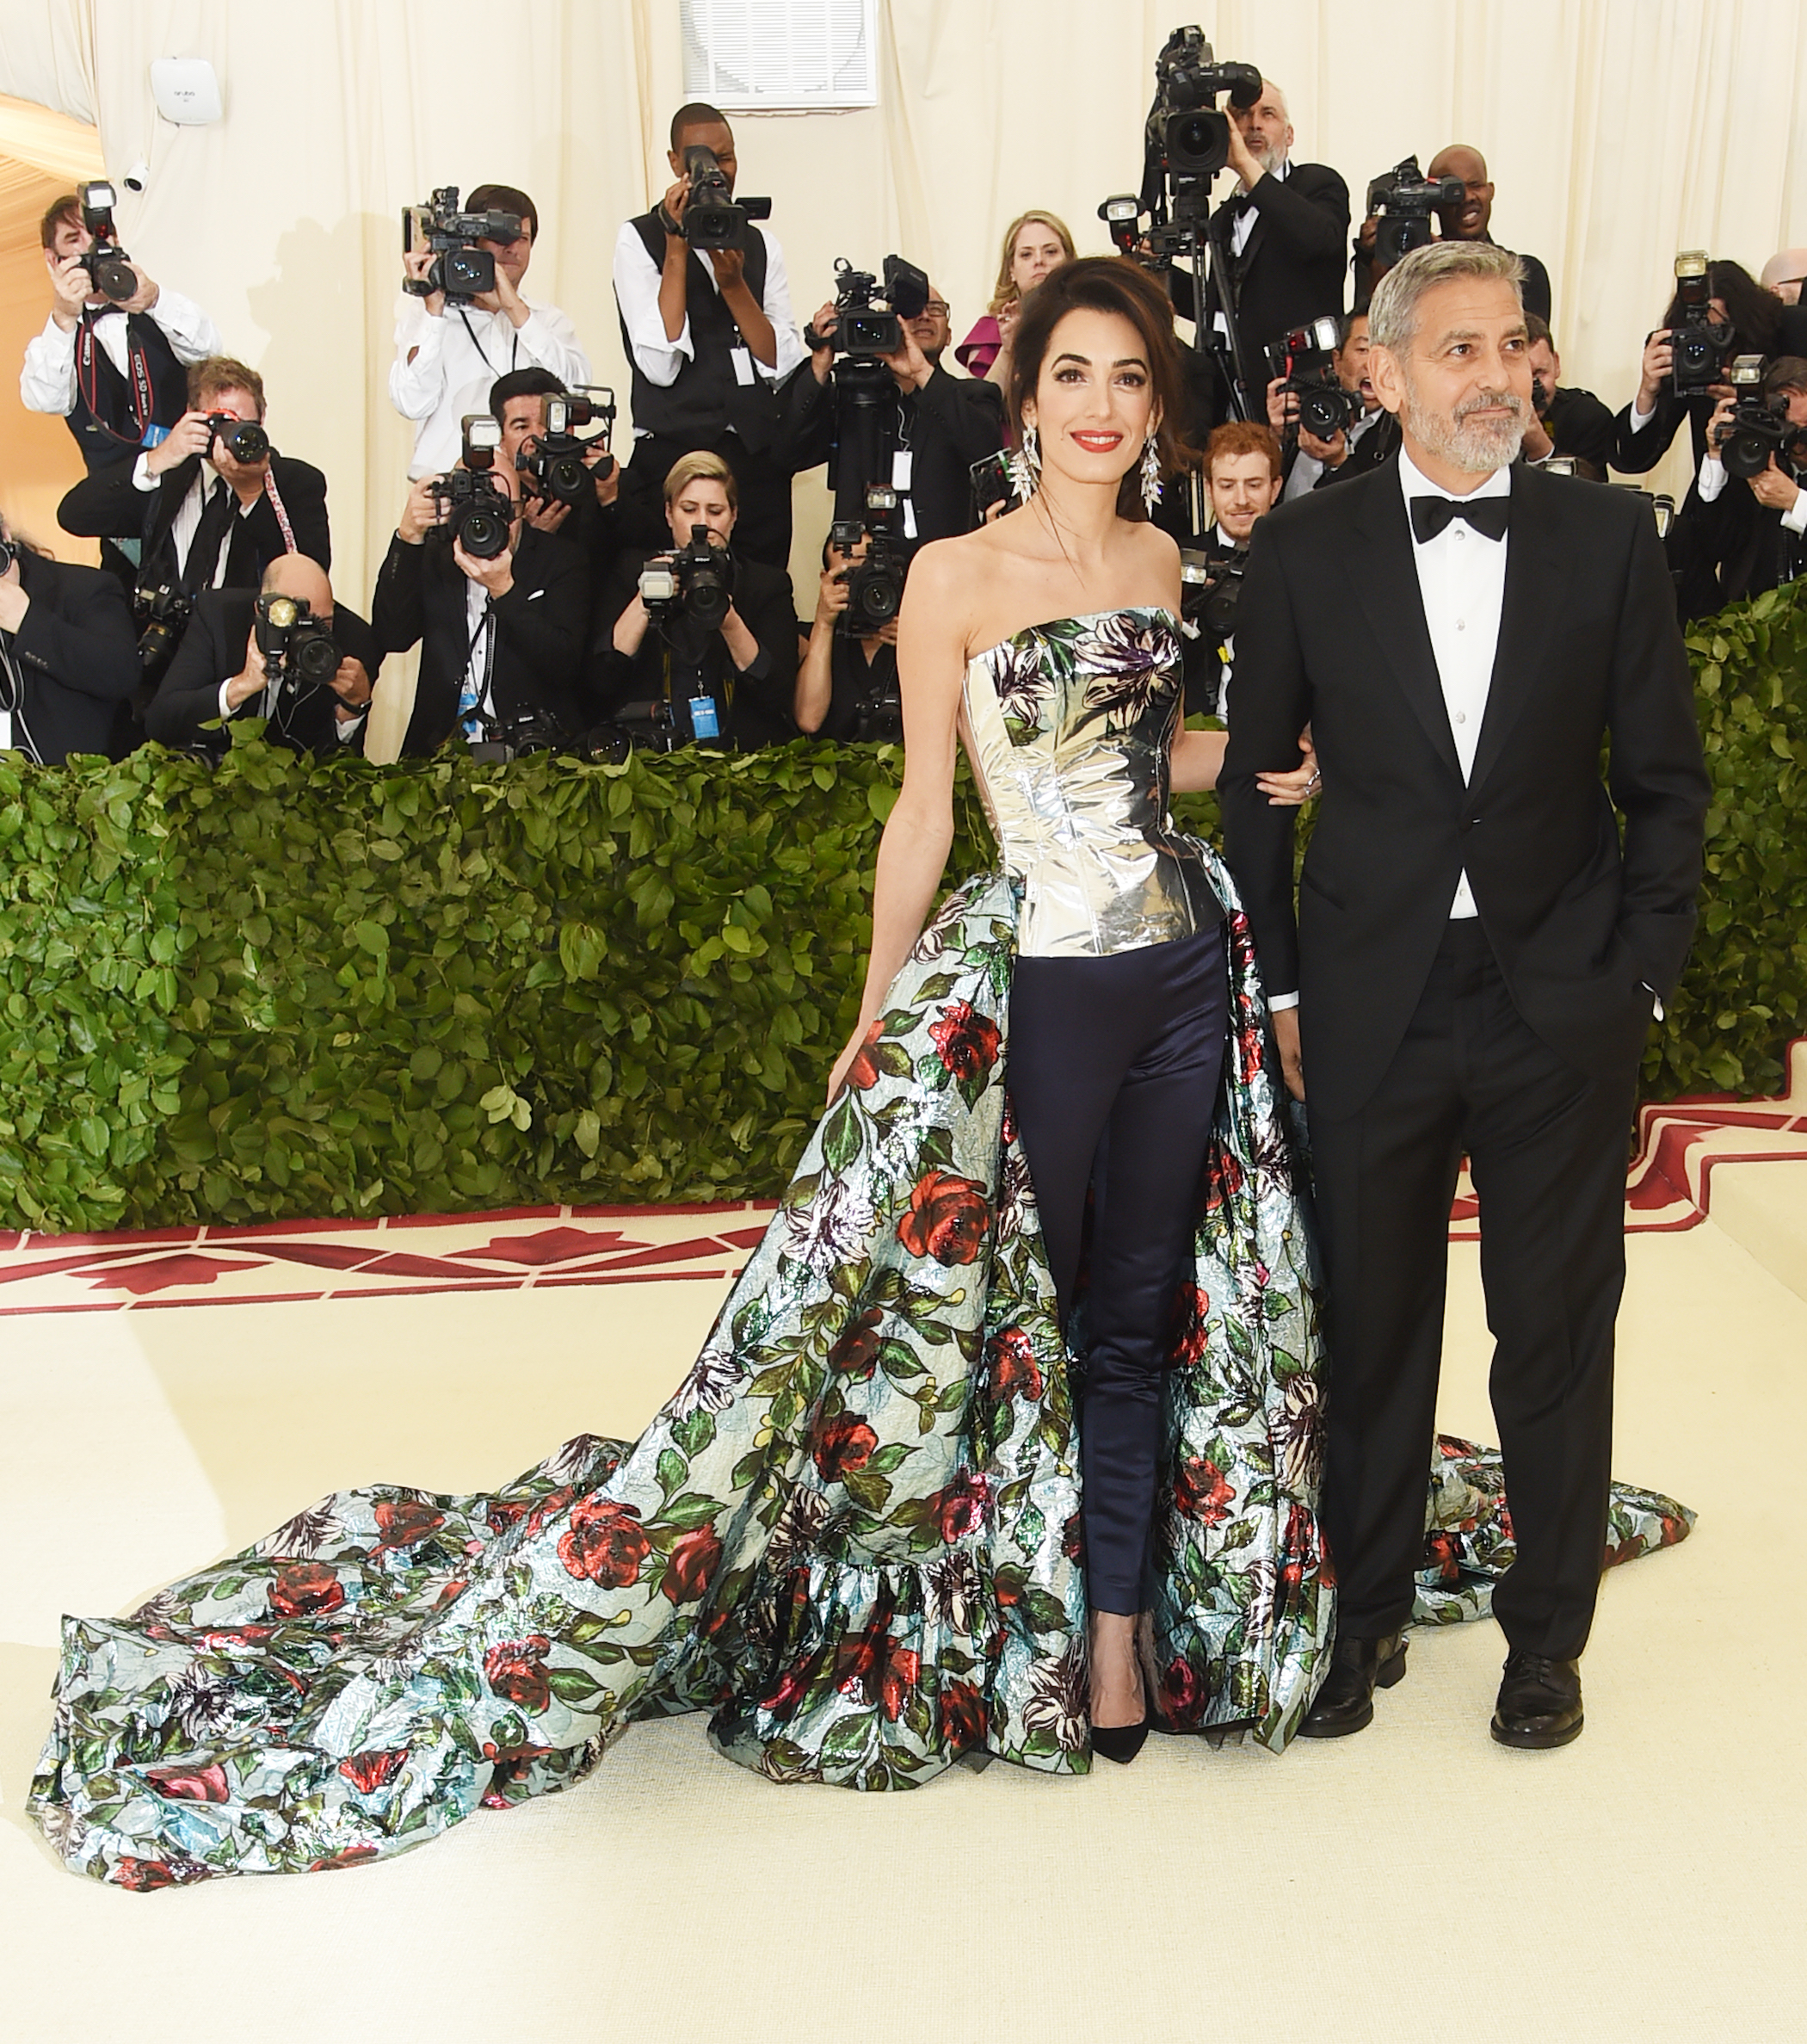 George Clooney Just Introduced Himself as  Amal Clooney's Husband